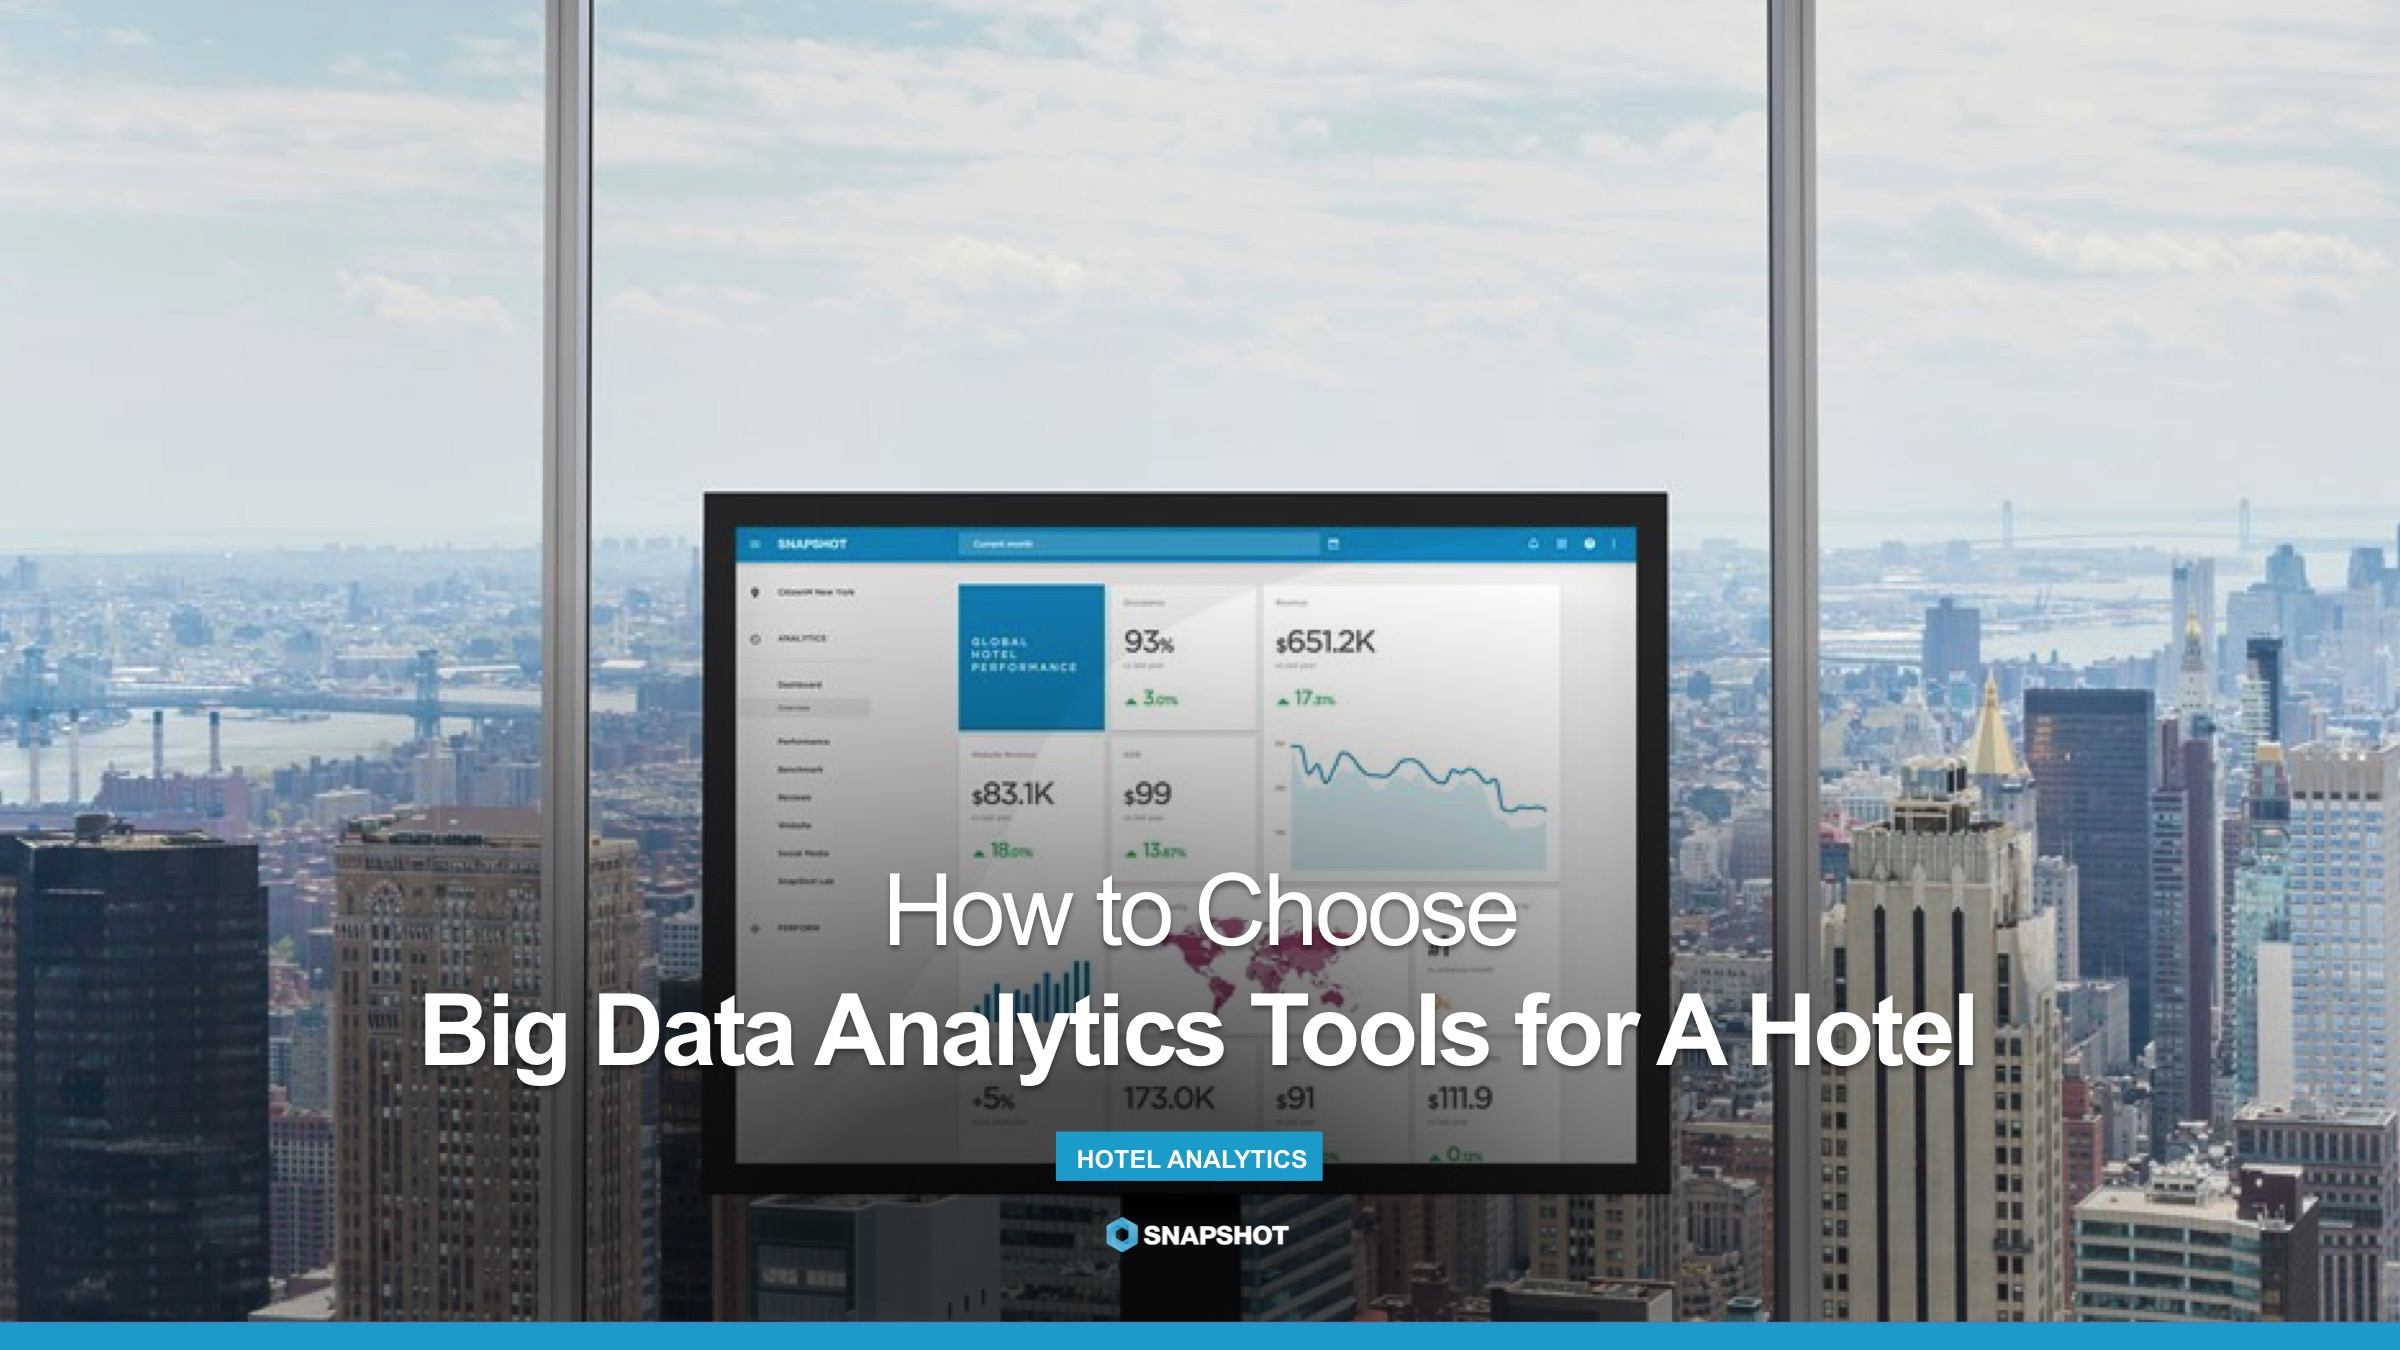 How to Choose Big Data Analytics Tools for a Hotel